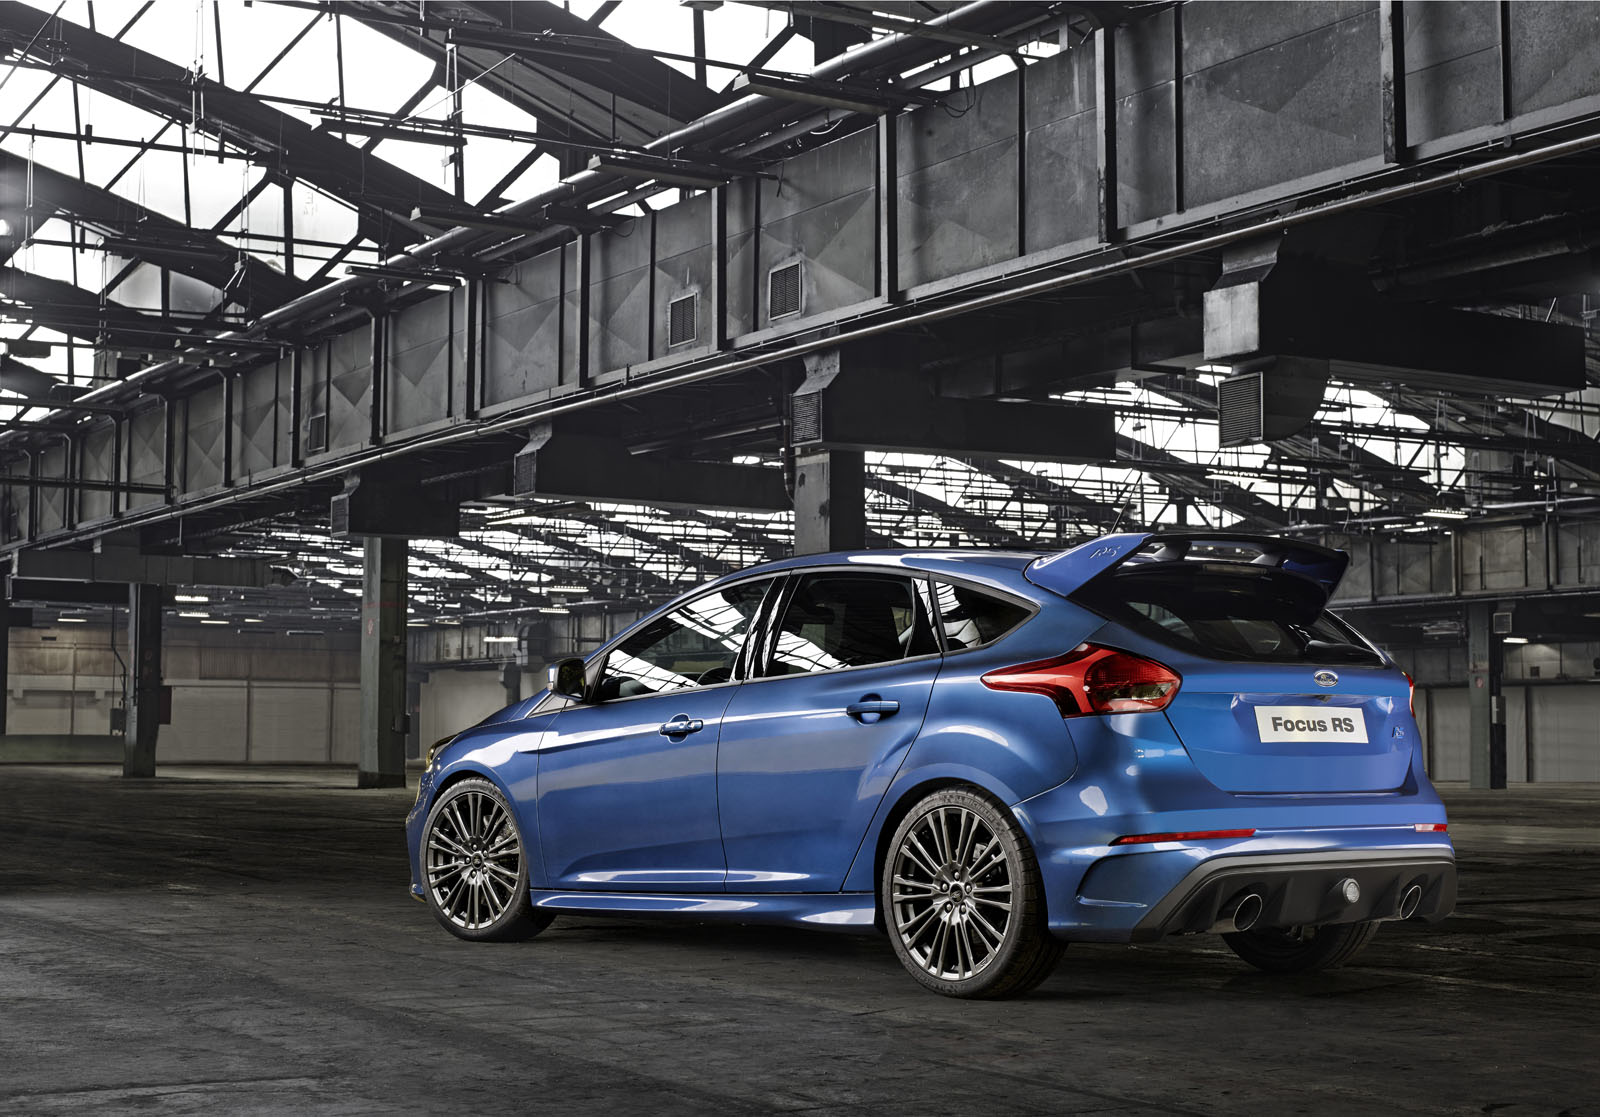 nouvelle ford focus rs 2015 350 chevaux french driver. Black Bedroom Furniture Sets. Home Design Ideas